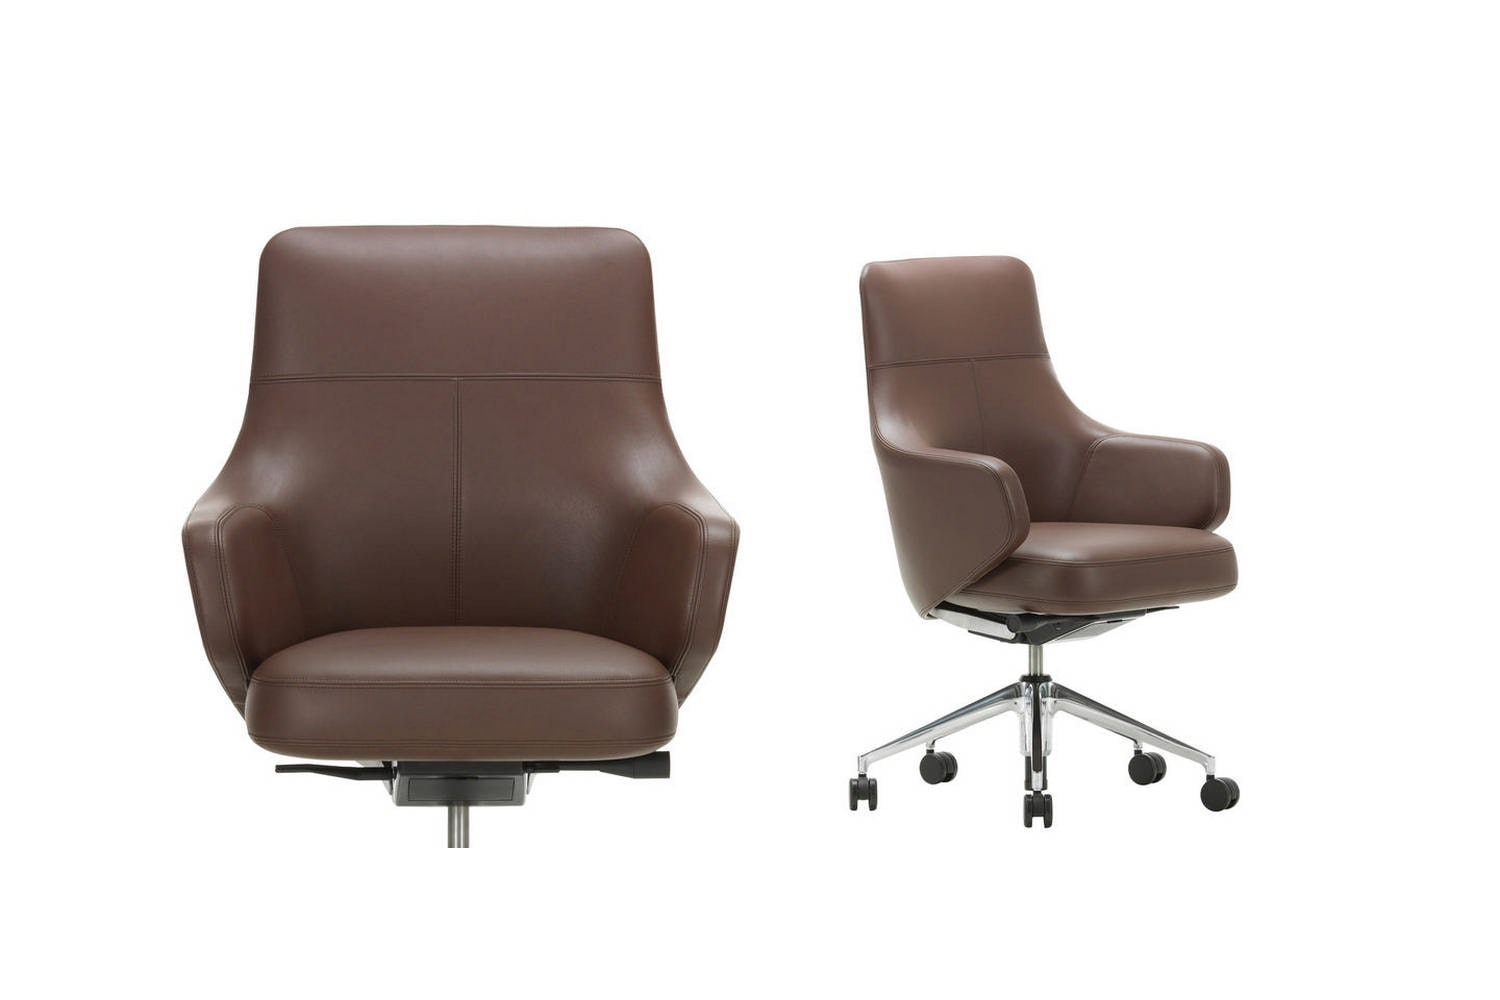 Grand Executive Lowback Chair by Antonio Citterio for Vitra